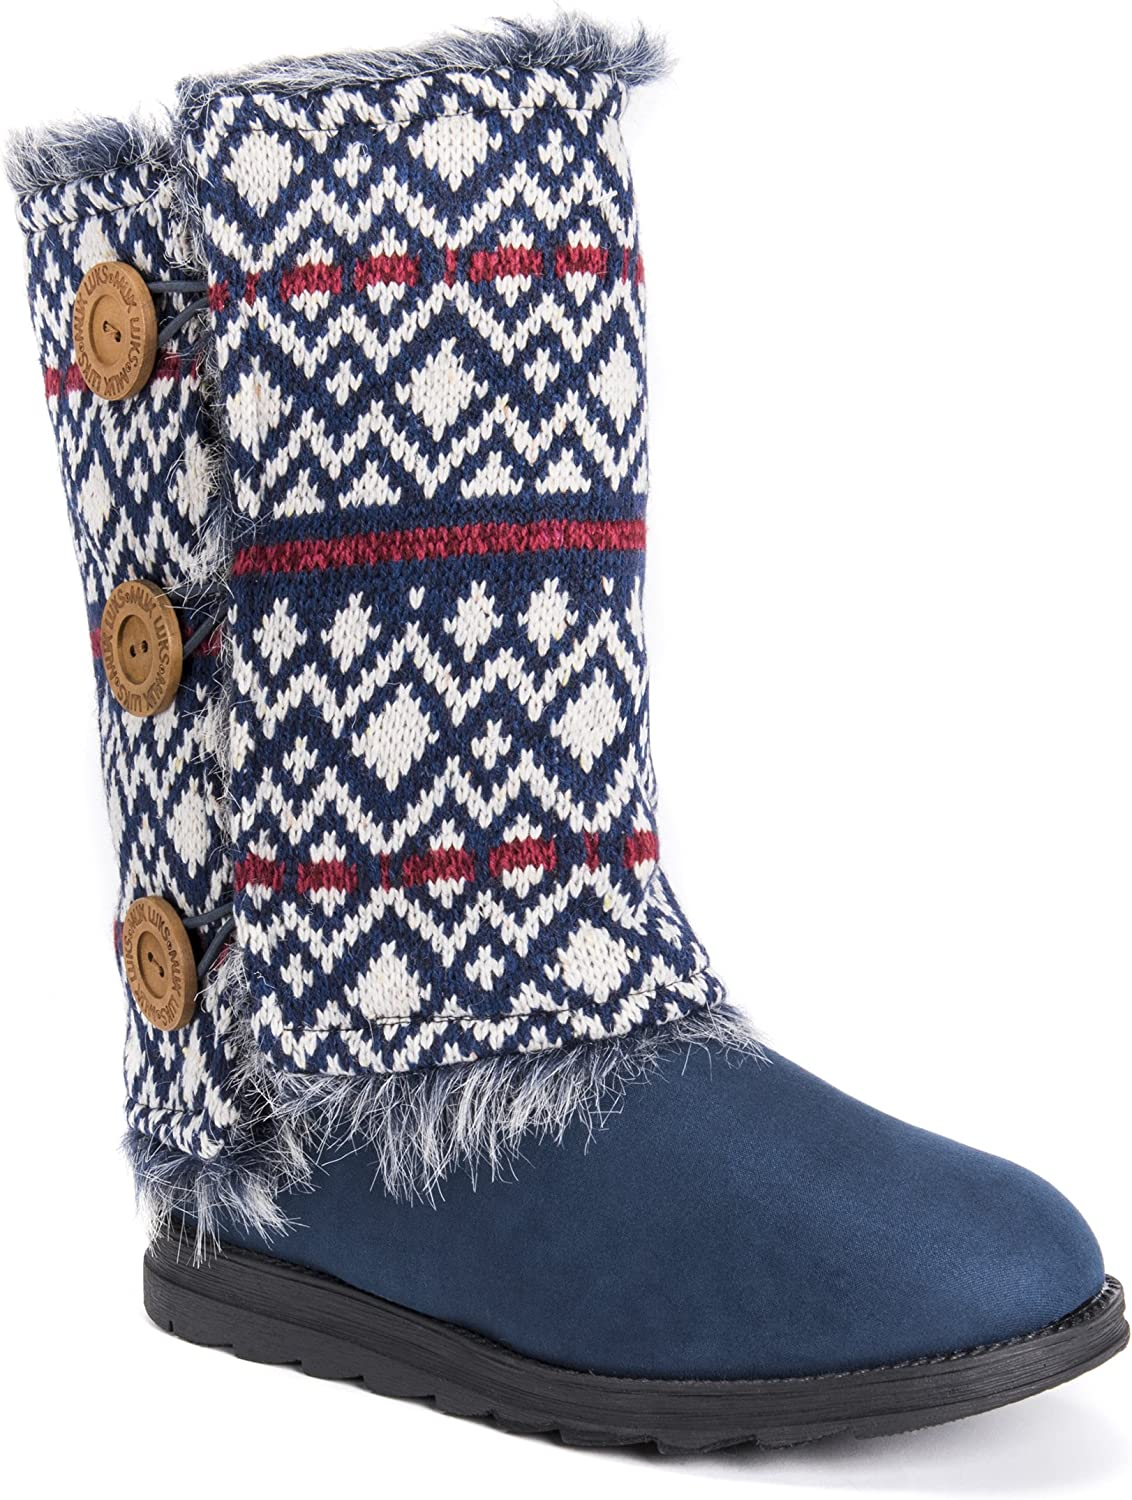 MUK LUKS Women's Reversible Andrea Fashion Boot